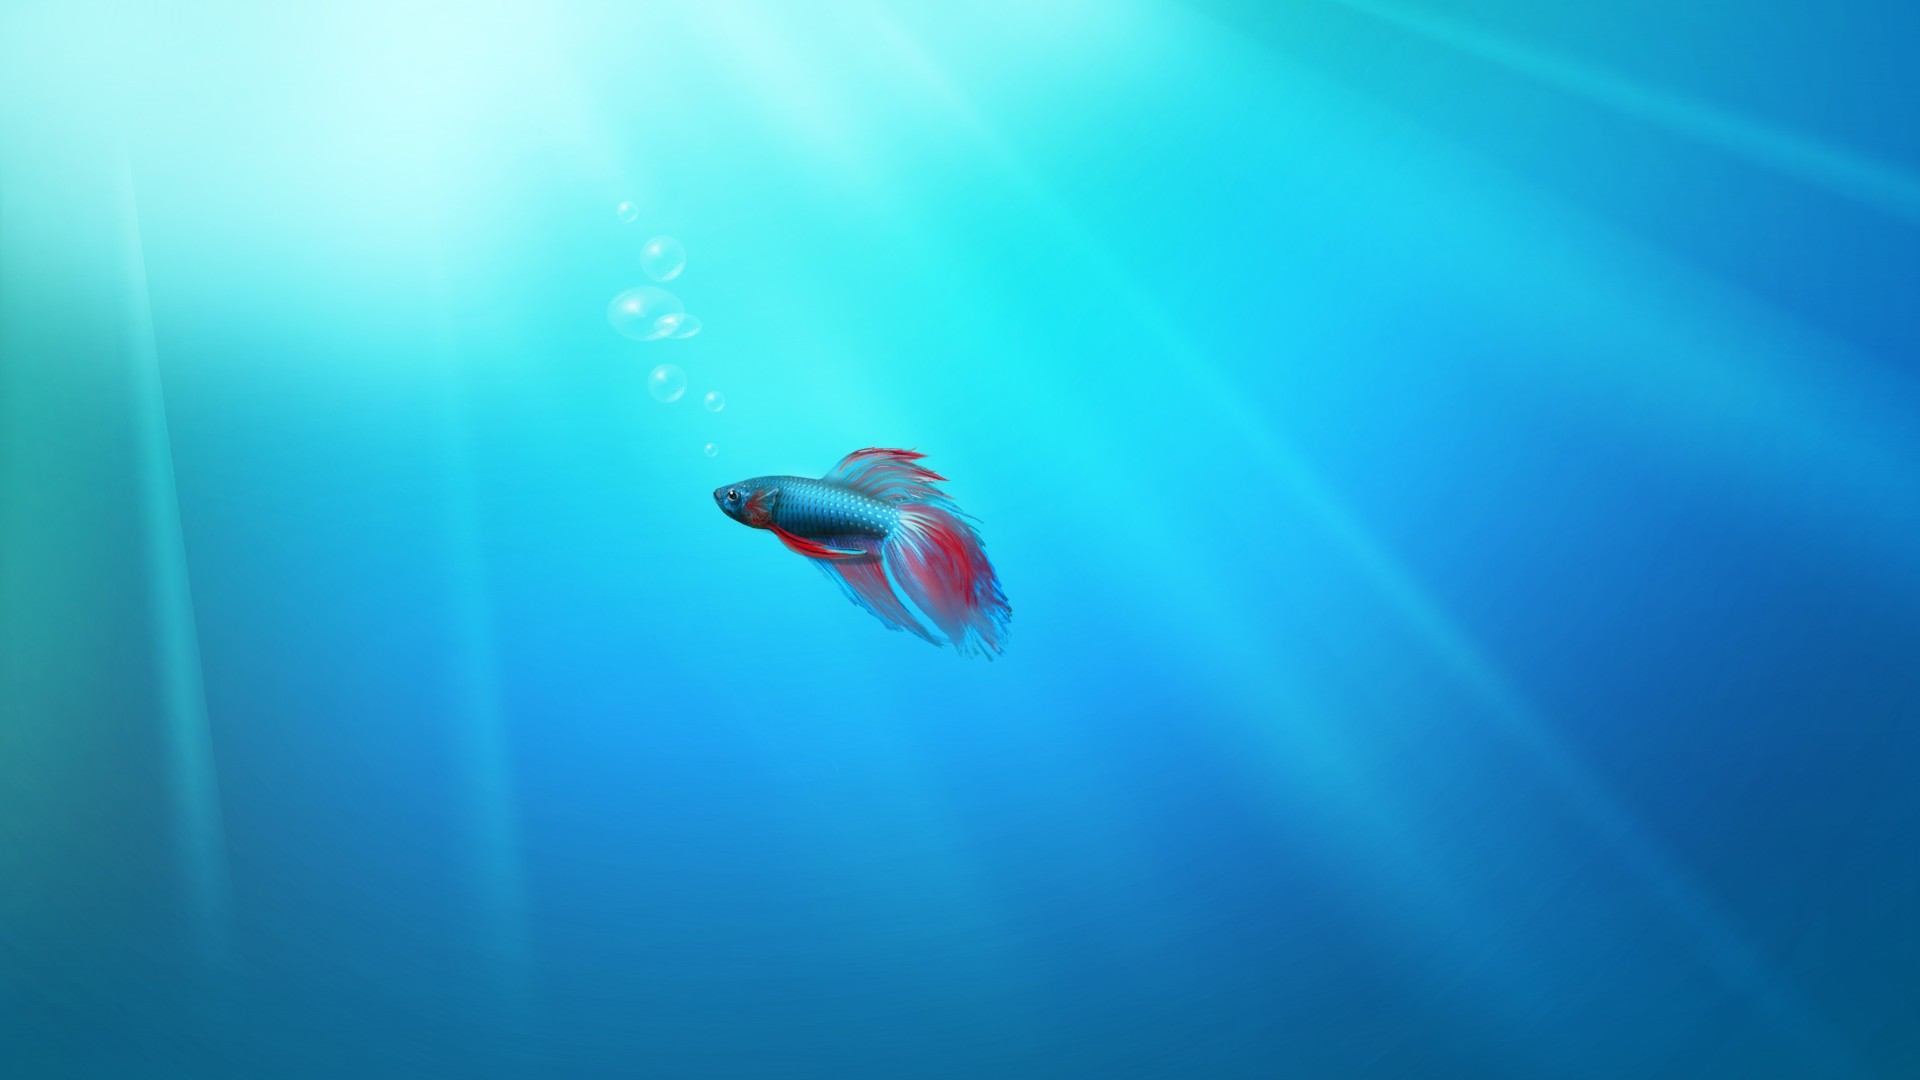 Lonely Fish Windows 7 Wallpaper Hd Wallpapers